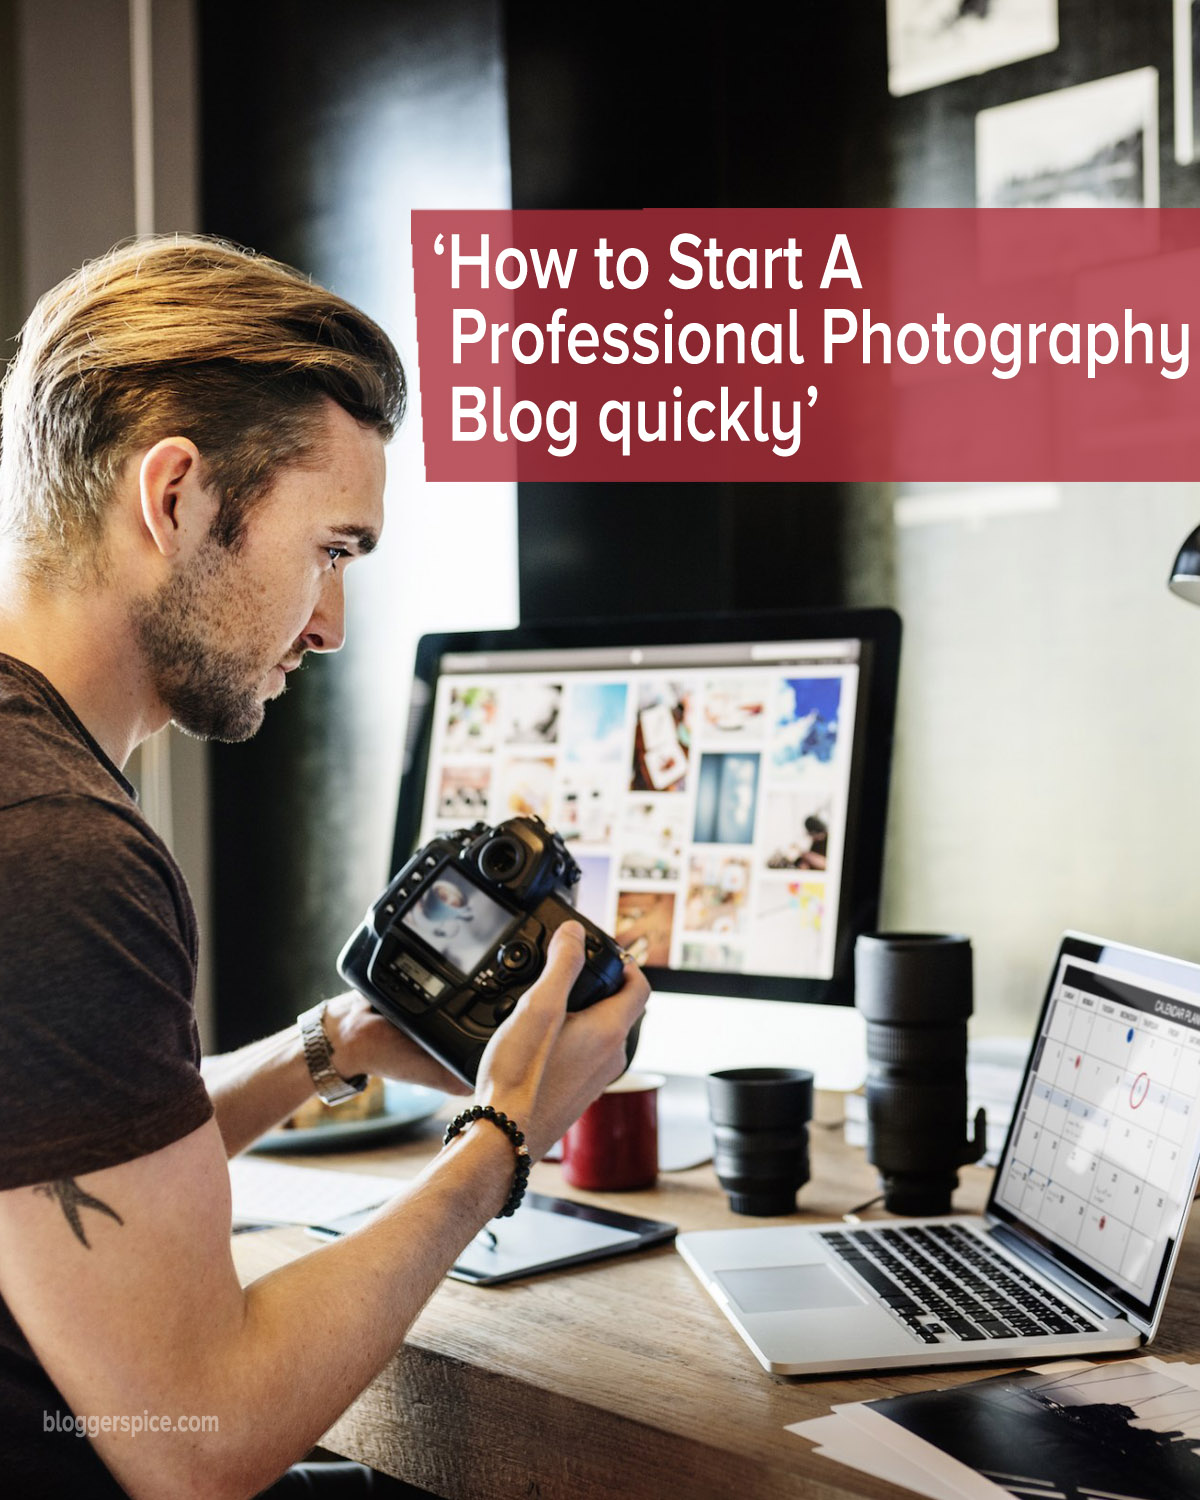 How to Start a Professional Photography Blog Quickly?